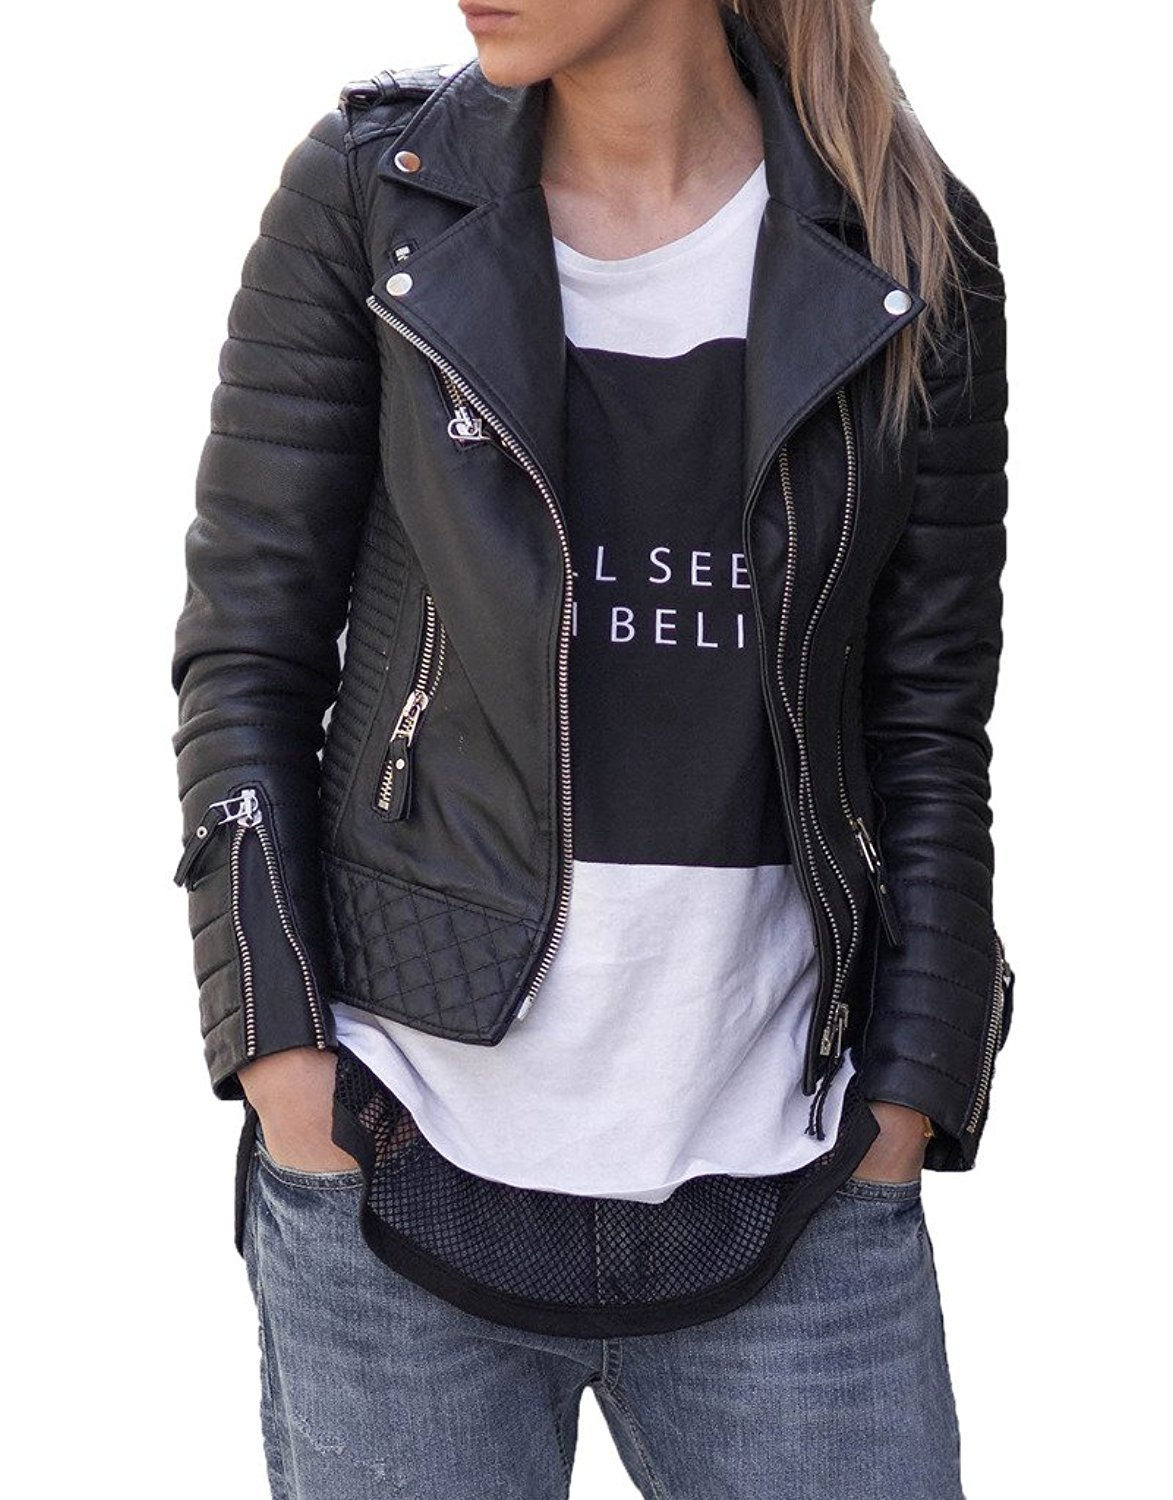 BENJER Skins Women's Lambskin Leather Bomber Motorcycle Jacket XX-Large Black